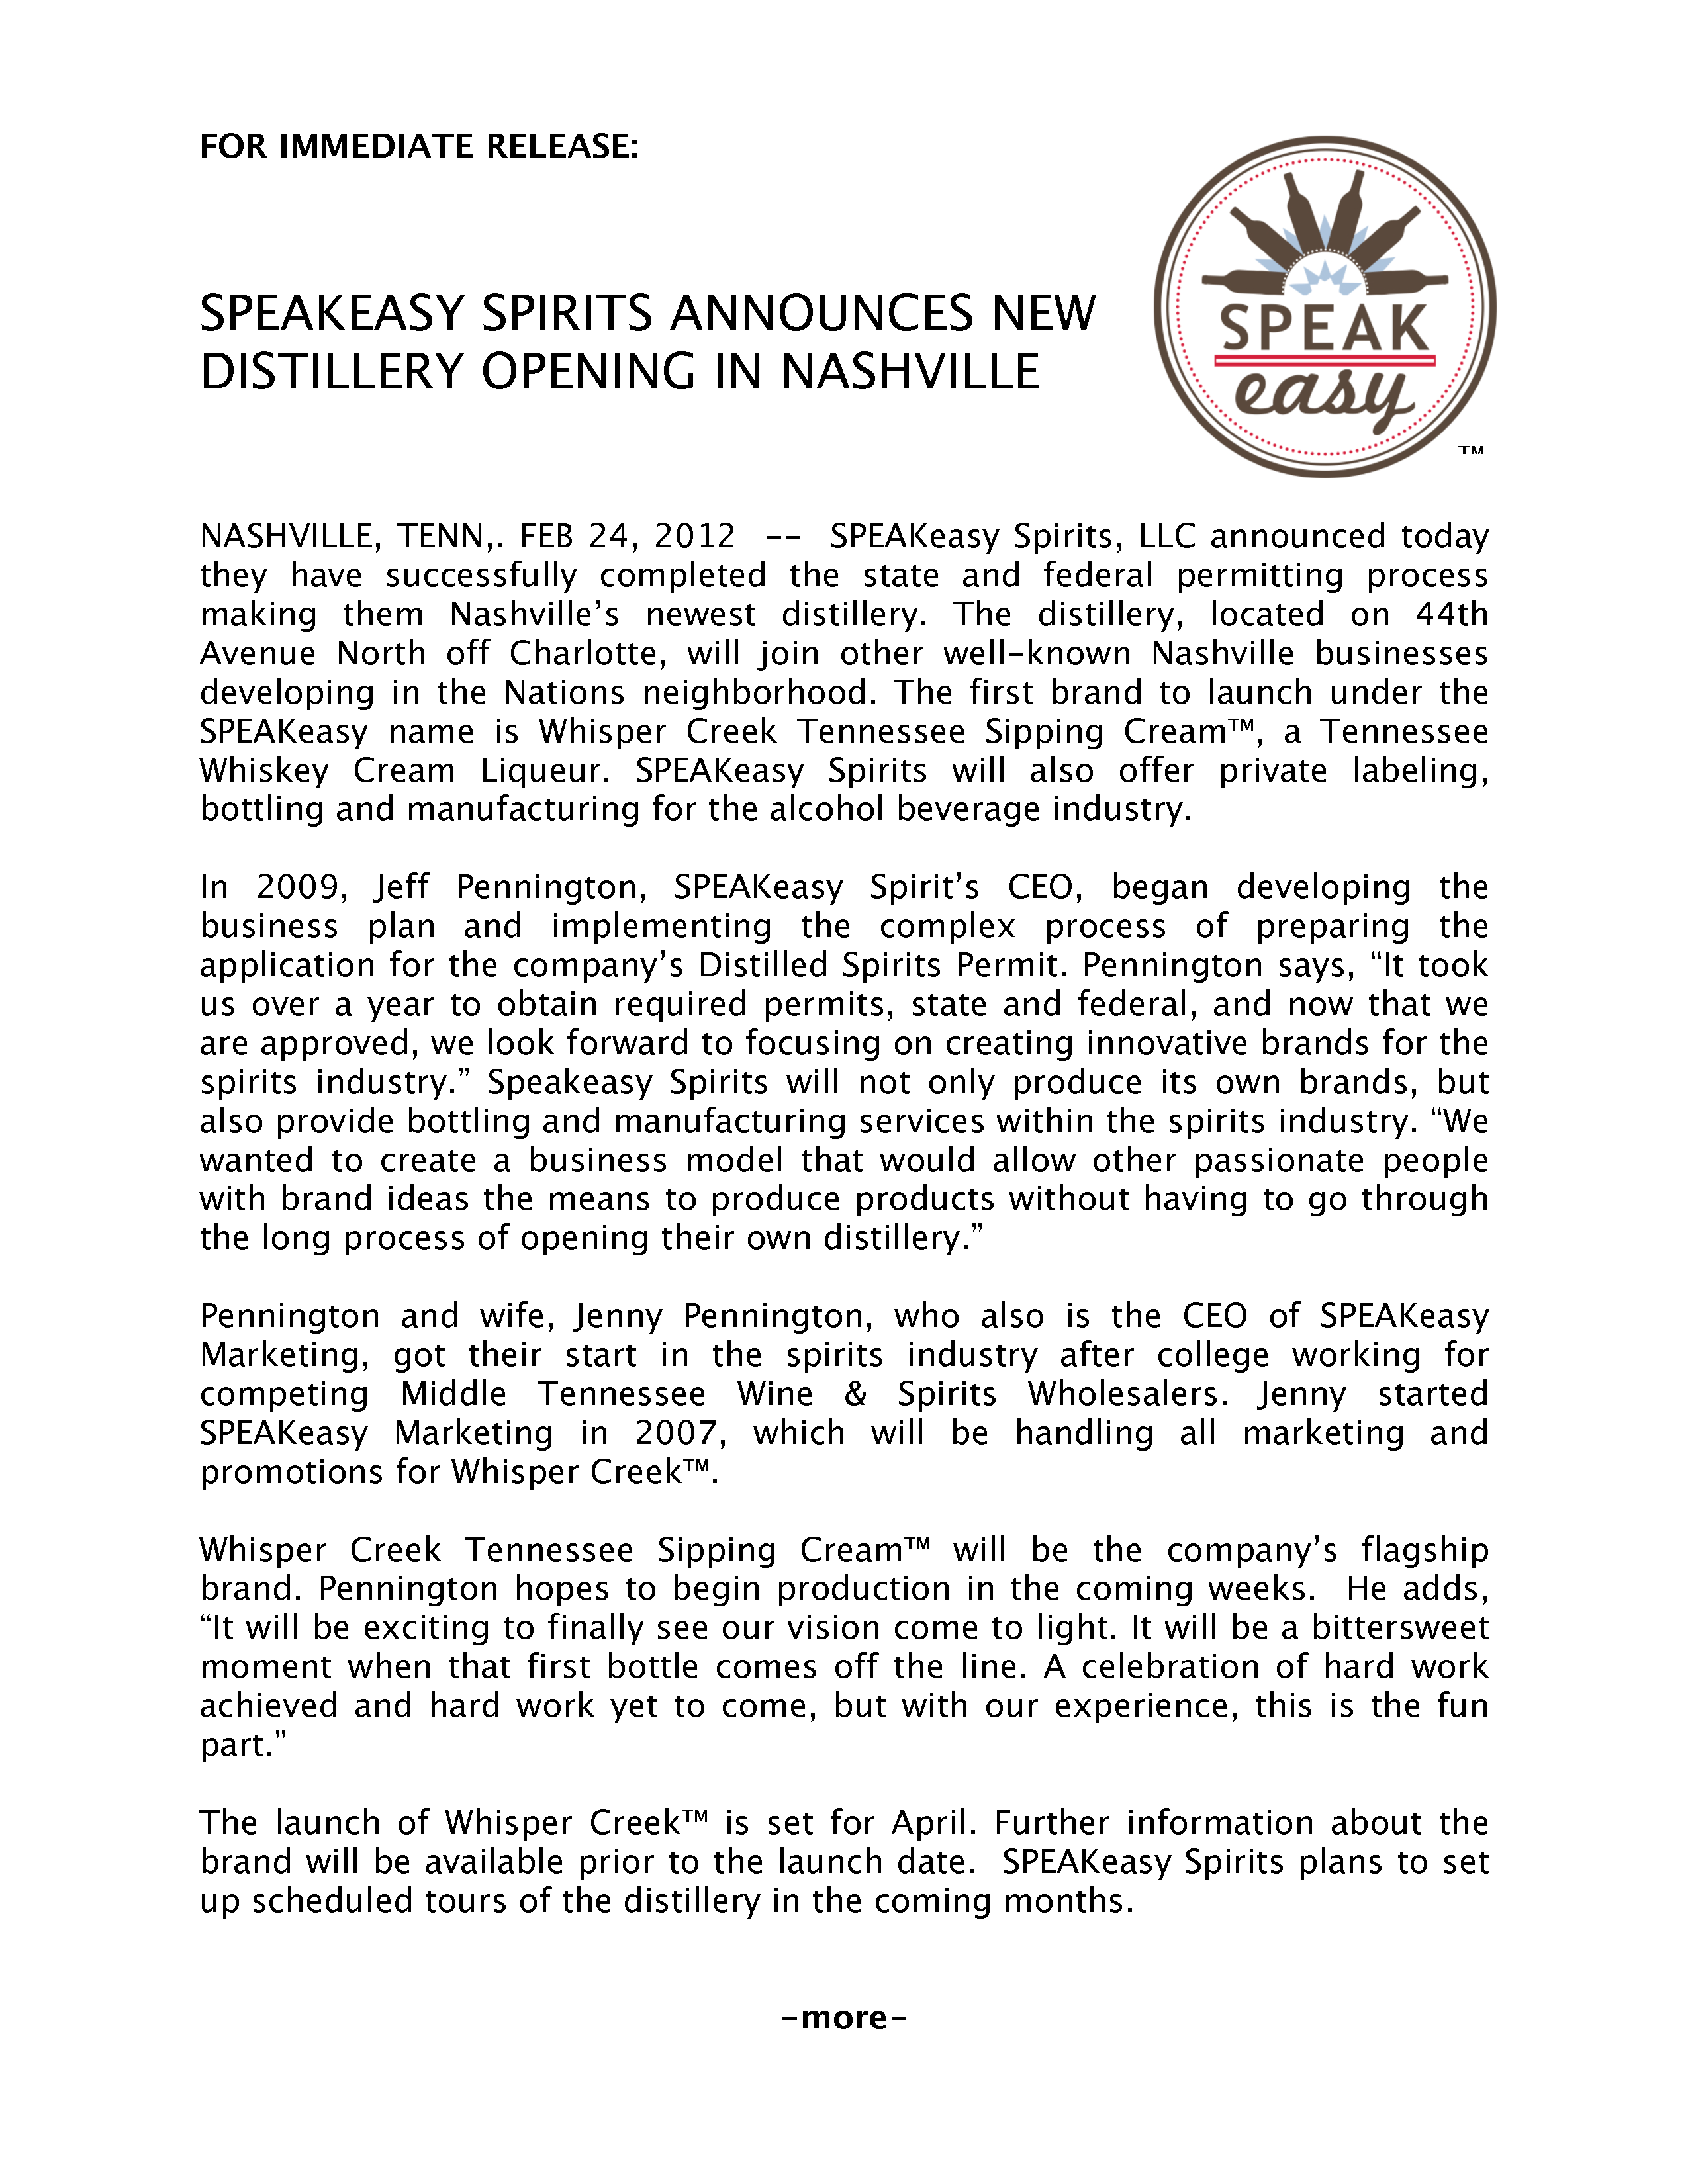 SPEAKeasy Press Release 1